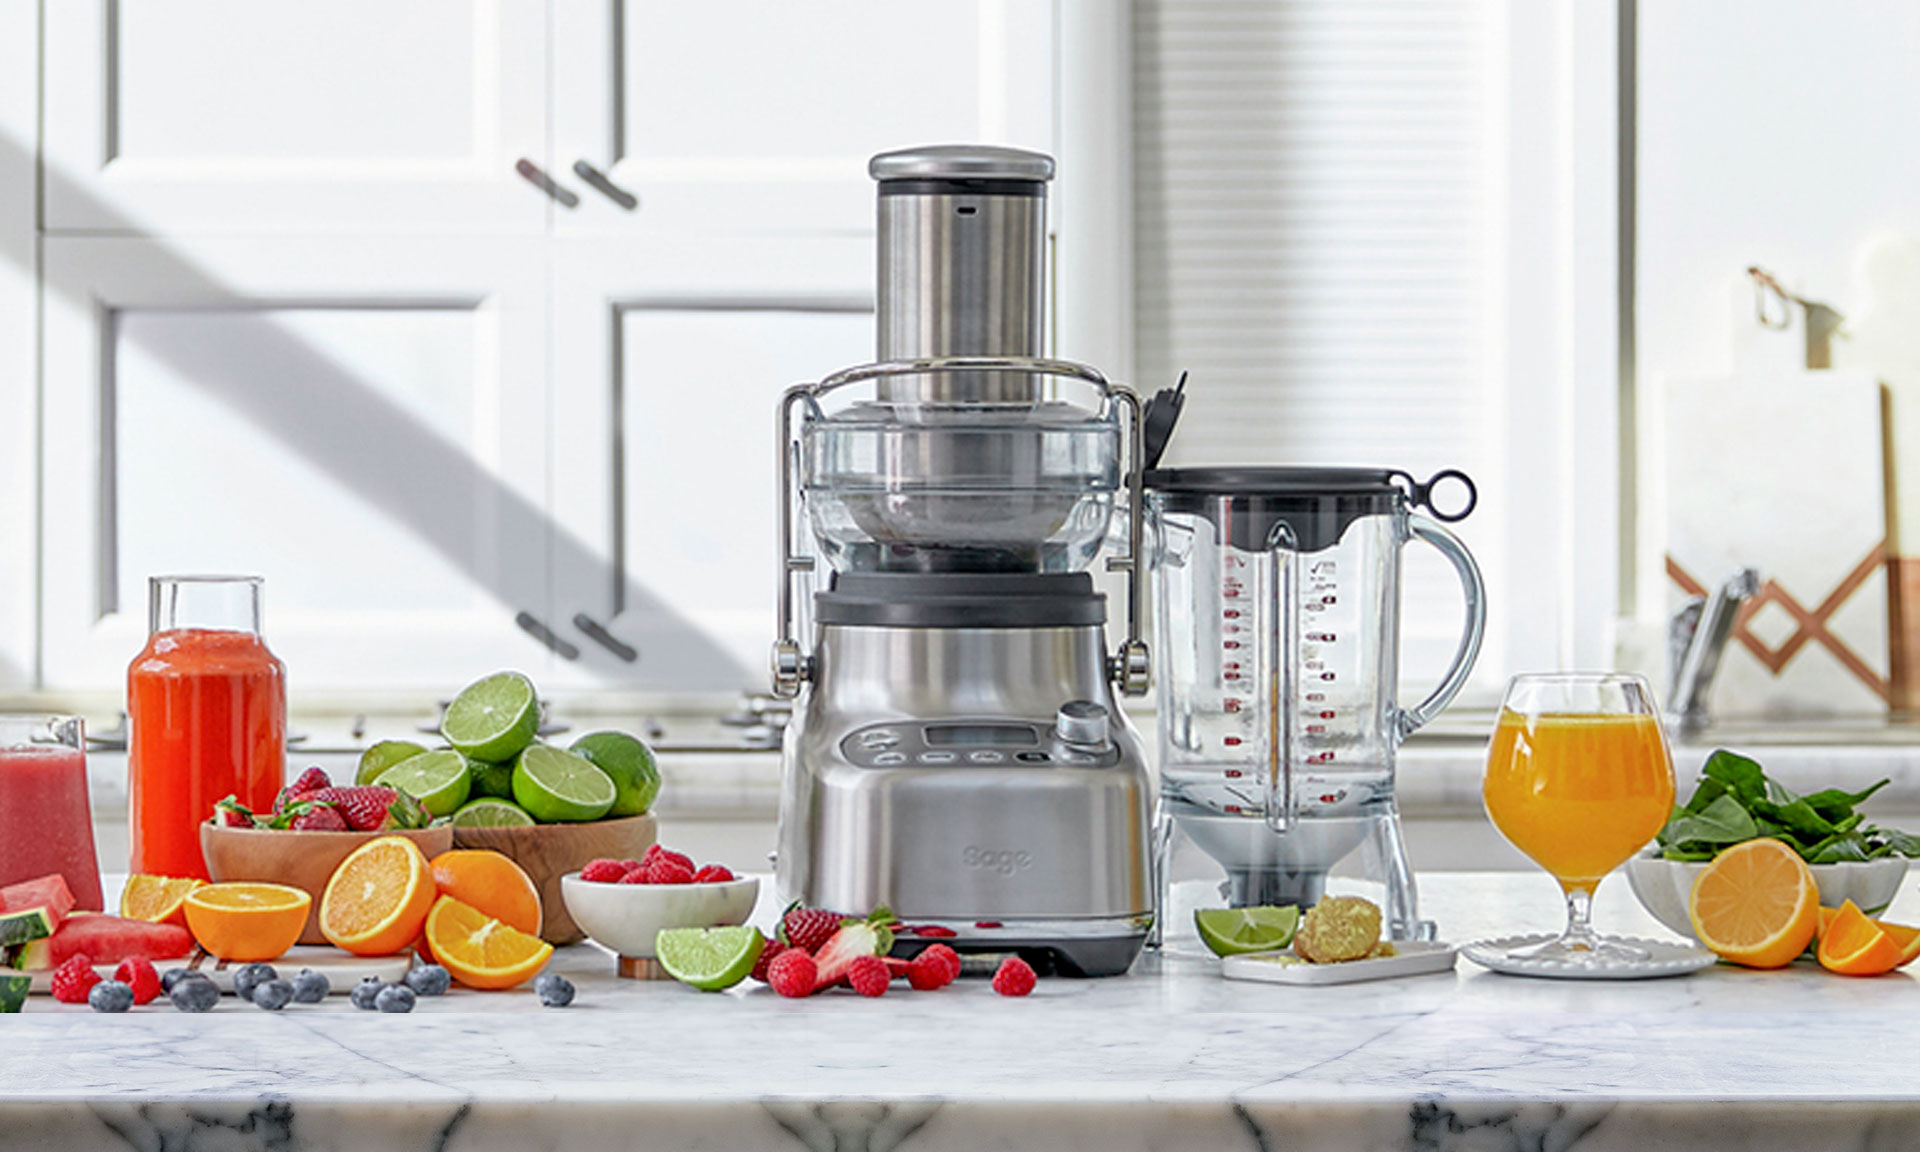 Sage launches new blender juicer hybrid: but will 'bluicing